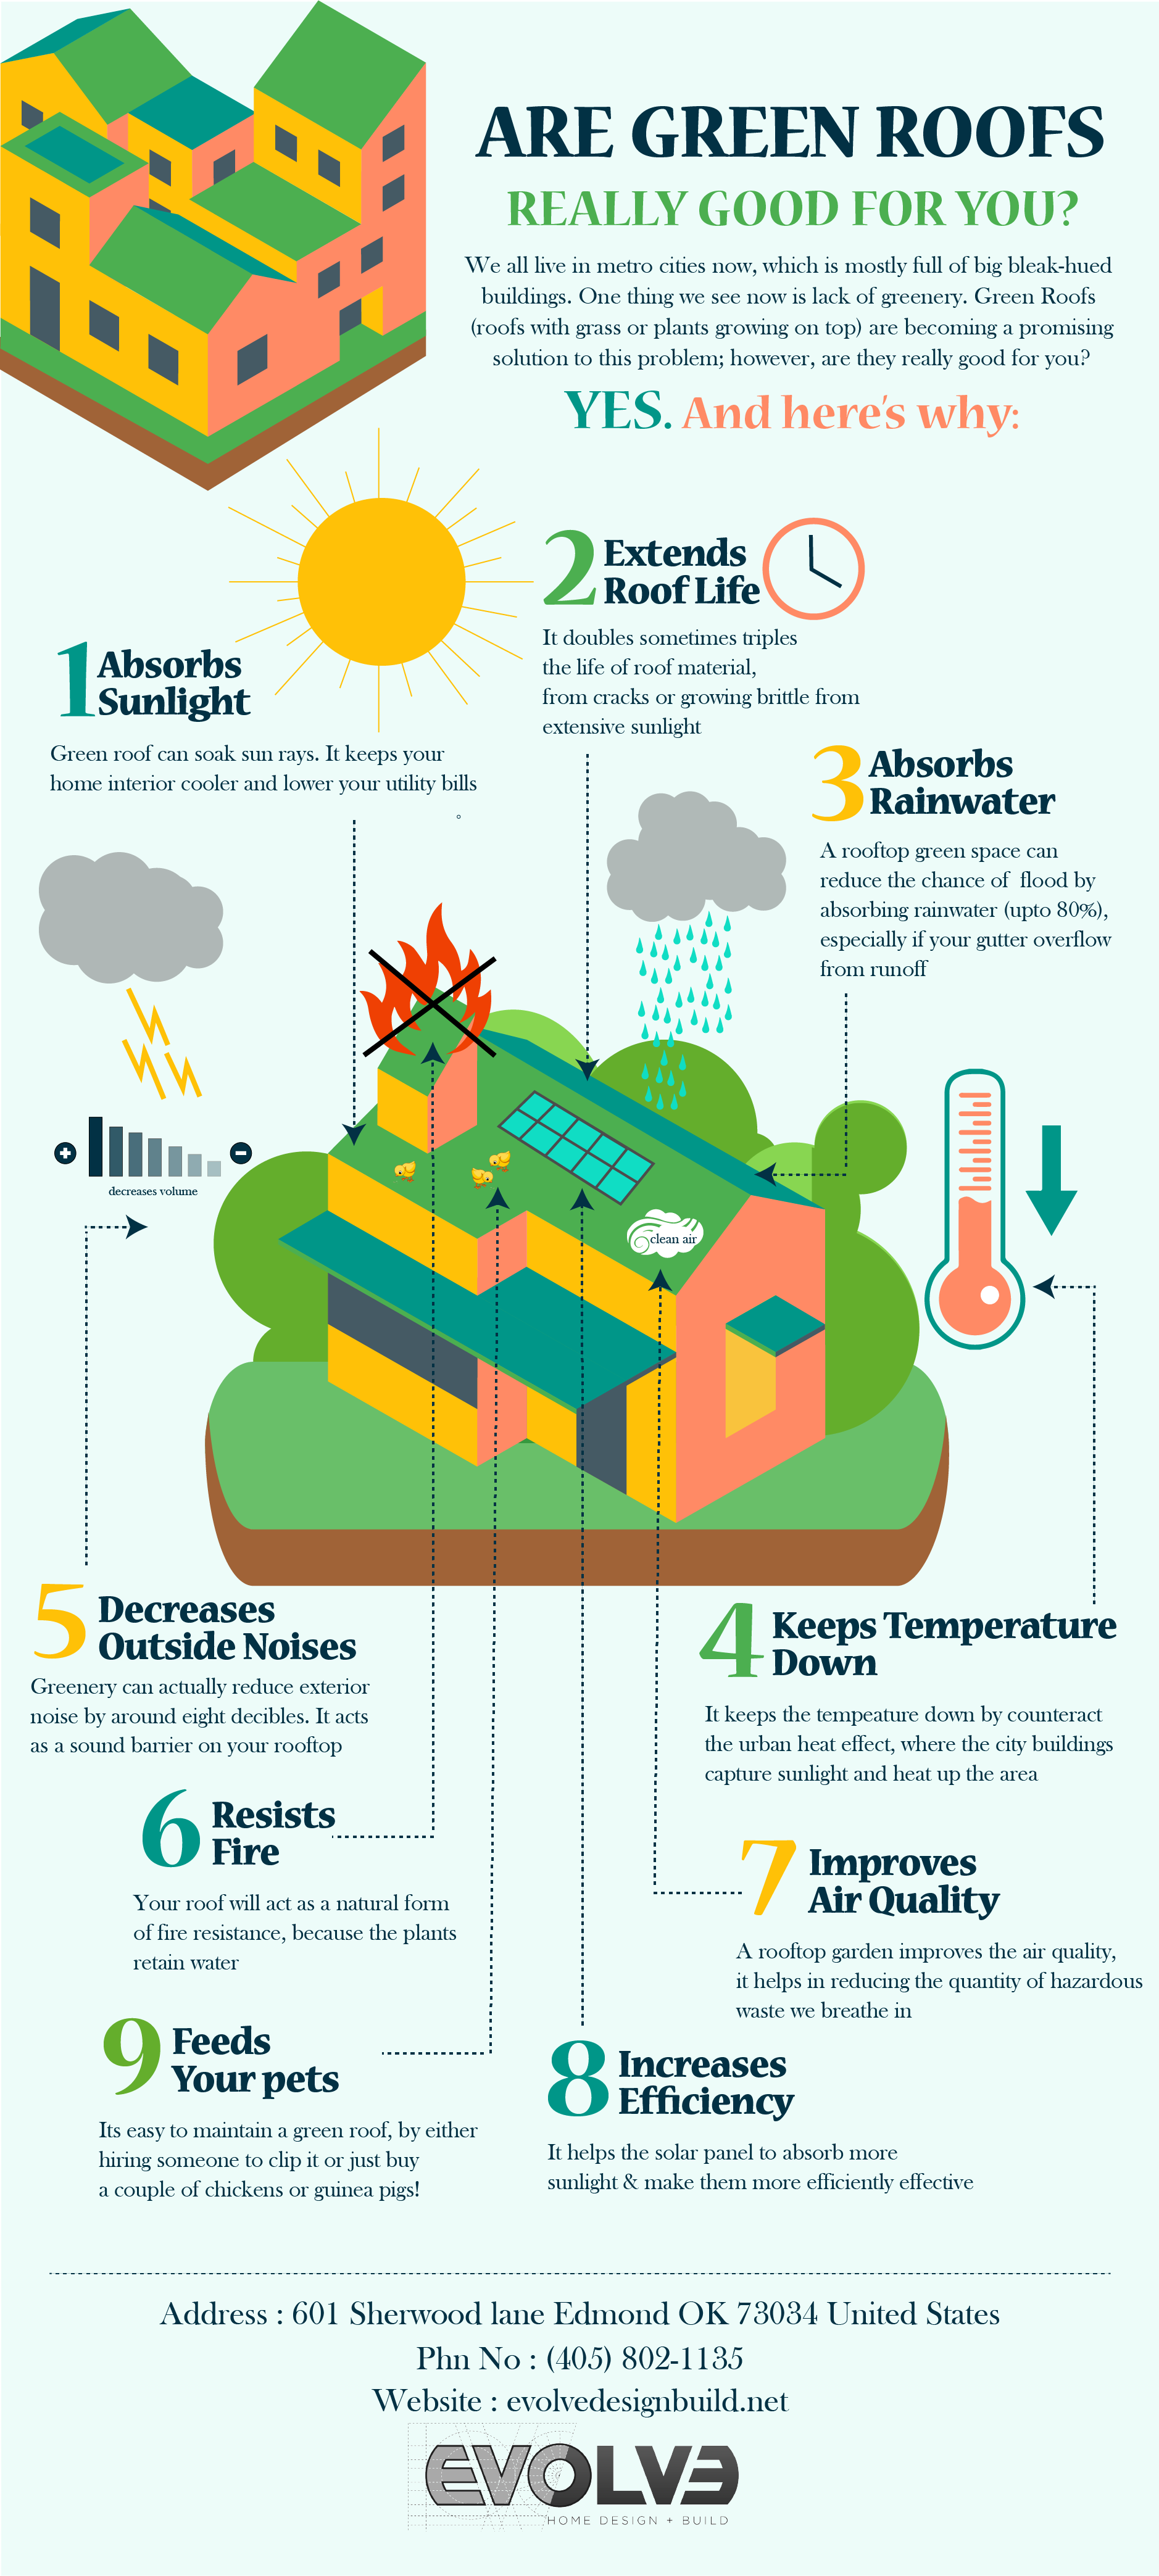 Are Green Roofs Really Good For You